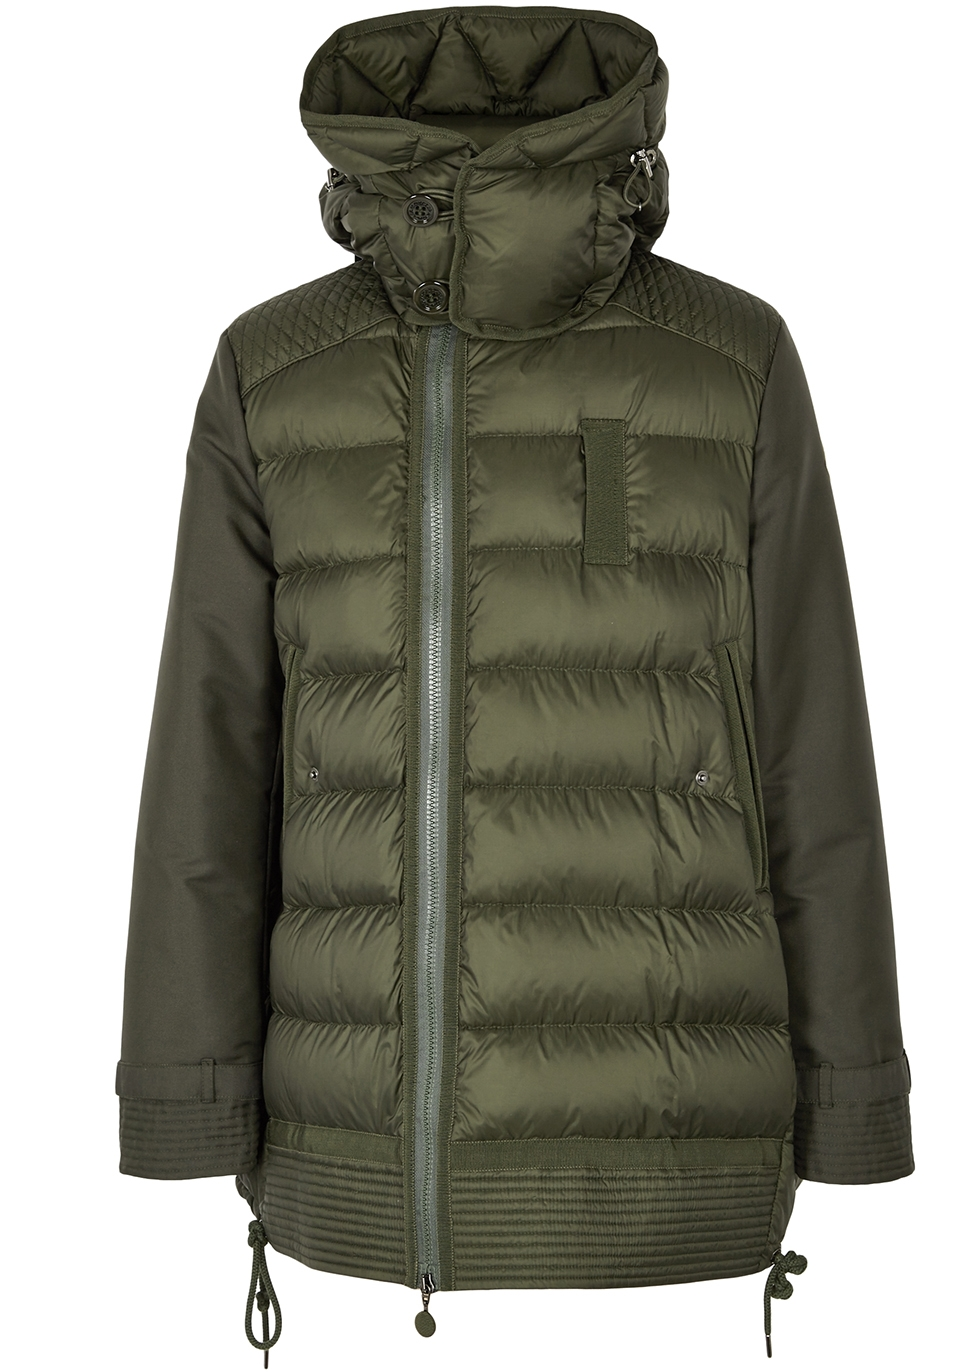 Harriet quilted shell jacket - Moncler